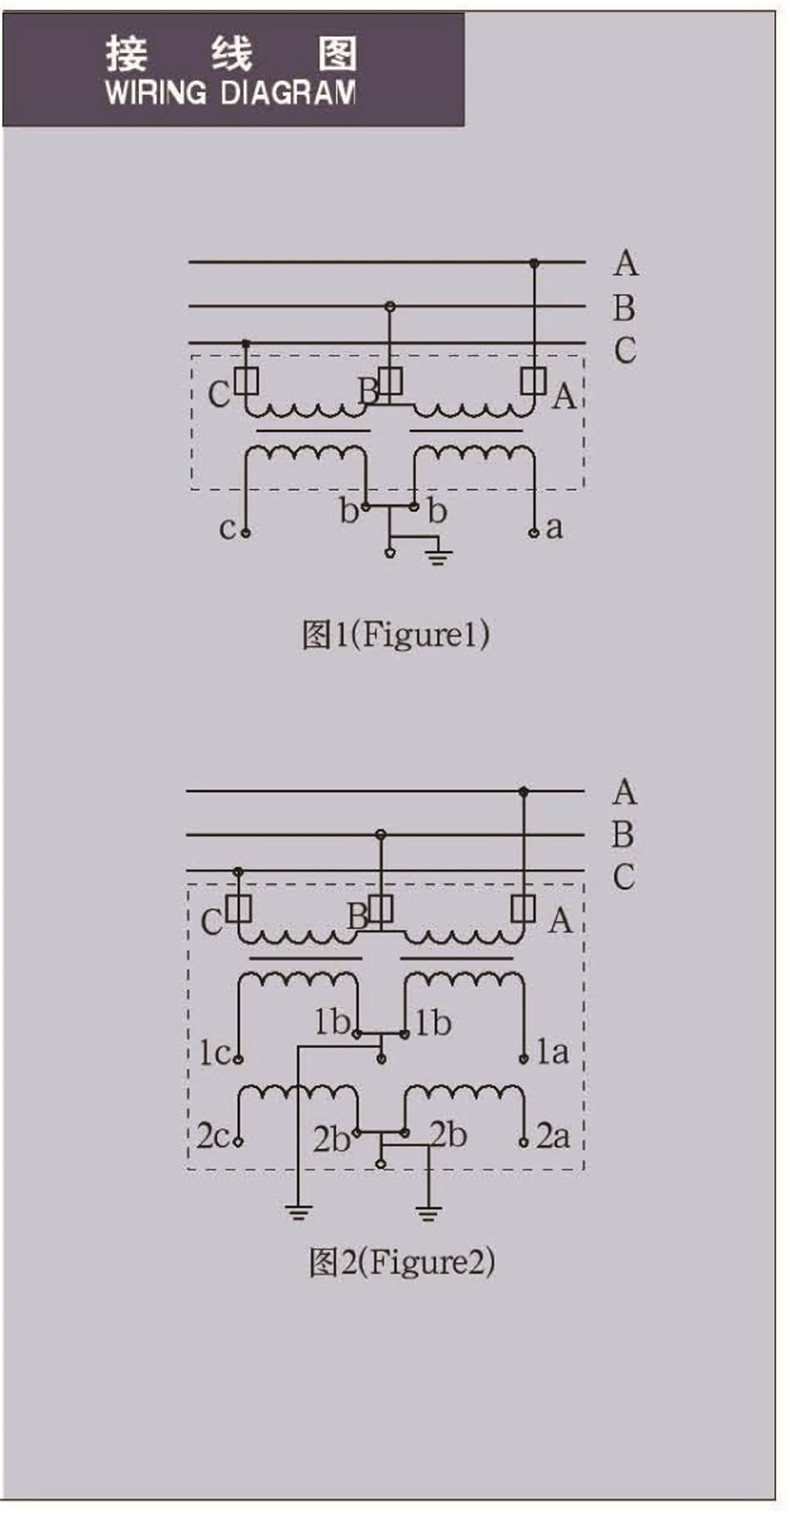 Jdzv16 35r Fully Enclosed Indoor Three Phasevoltage Low Voltage Transformer Wiring Diagram The Function Of Instrument Is To Change High Or Current Standard 100v